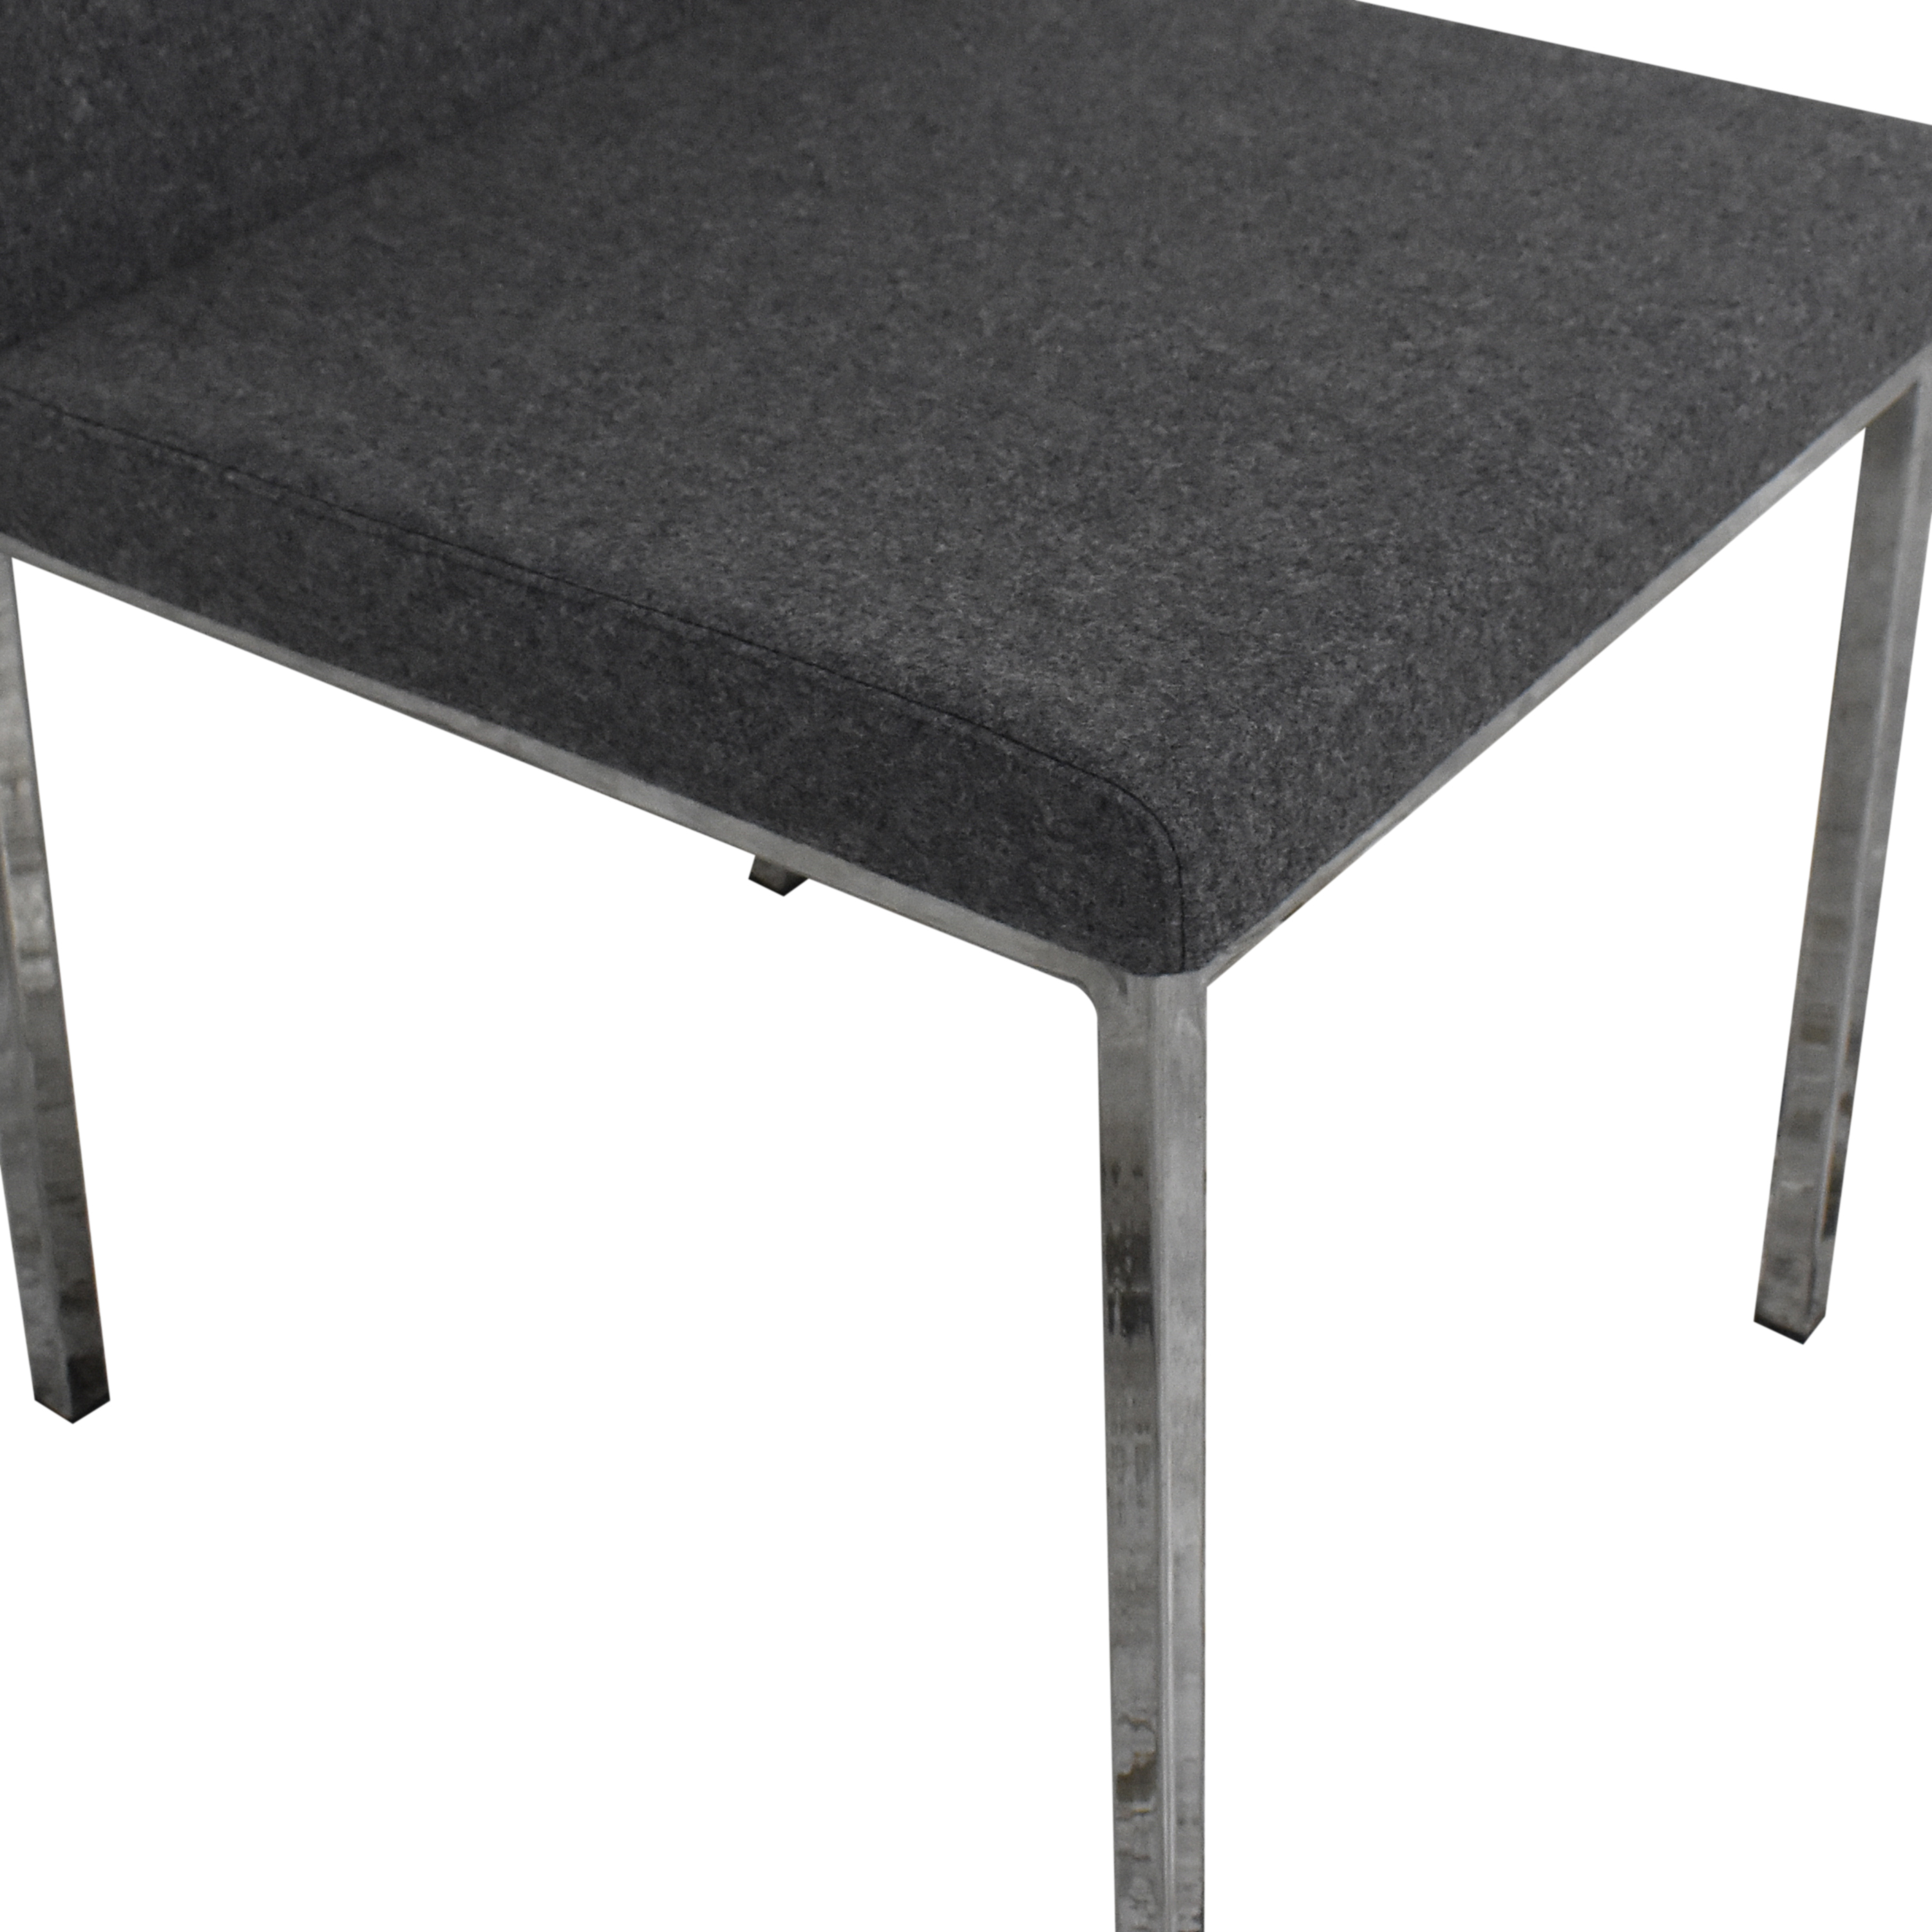 Crate & Barrel Crate & Barrel Upholstered Dining Chairs on sale